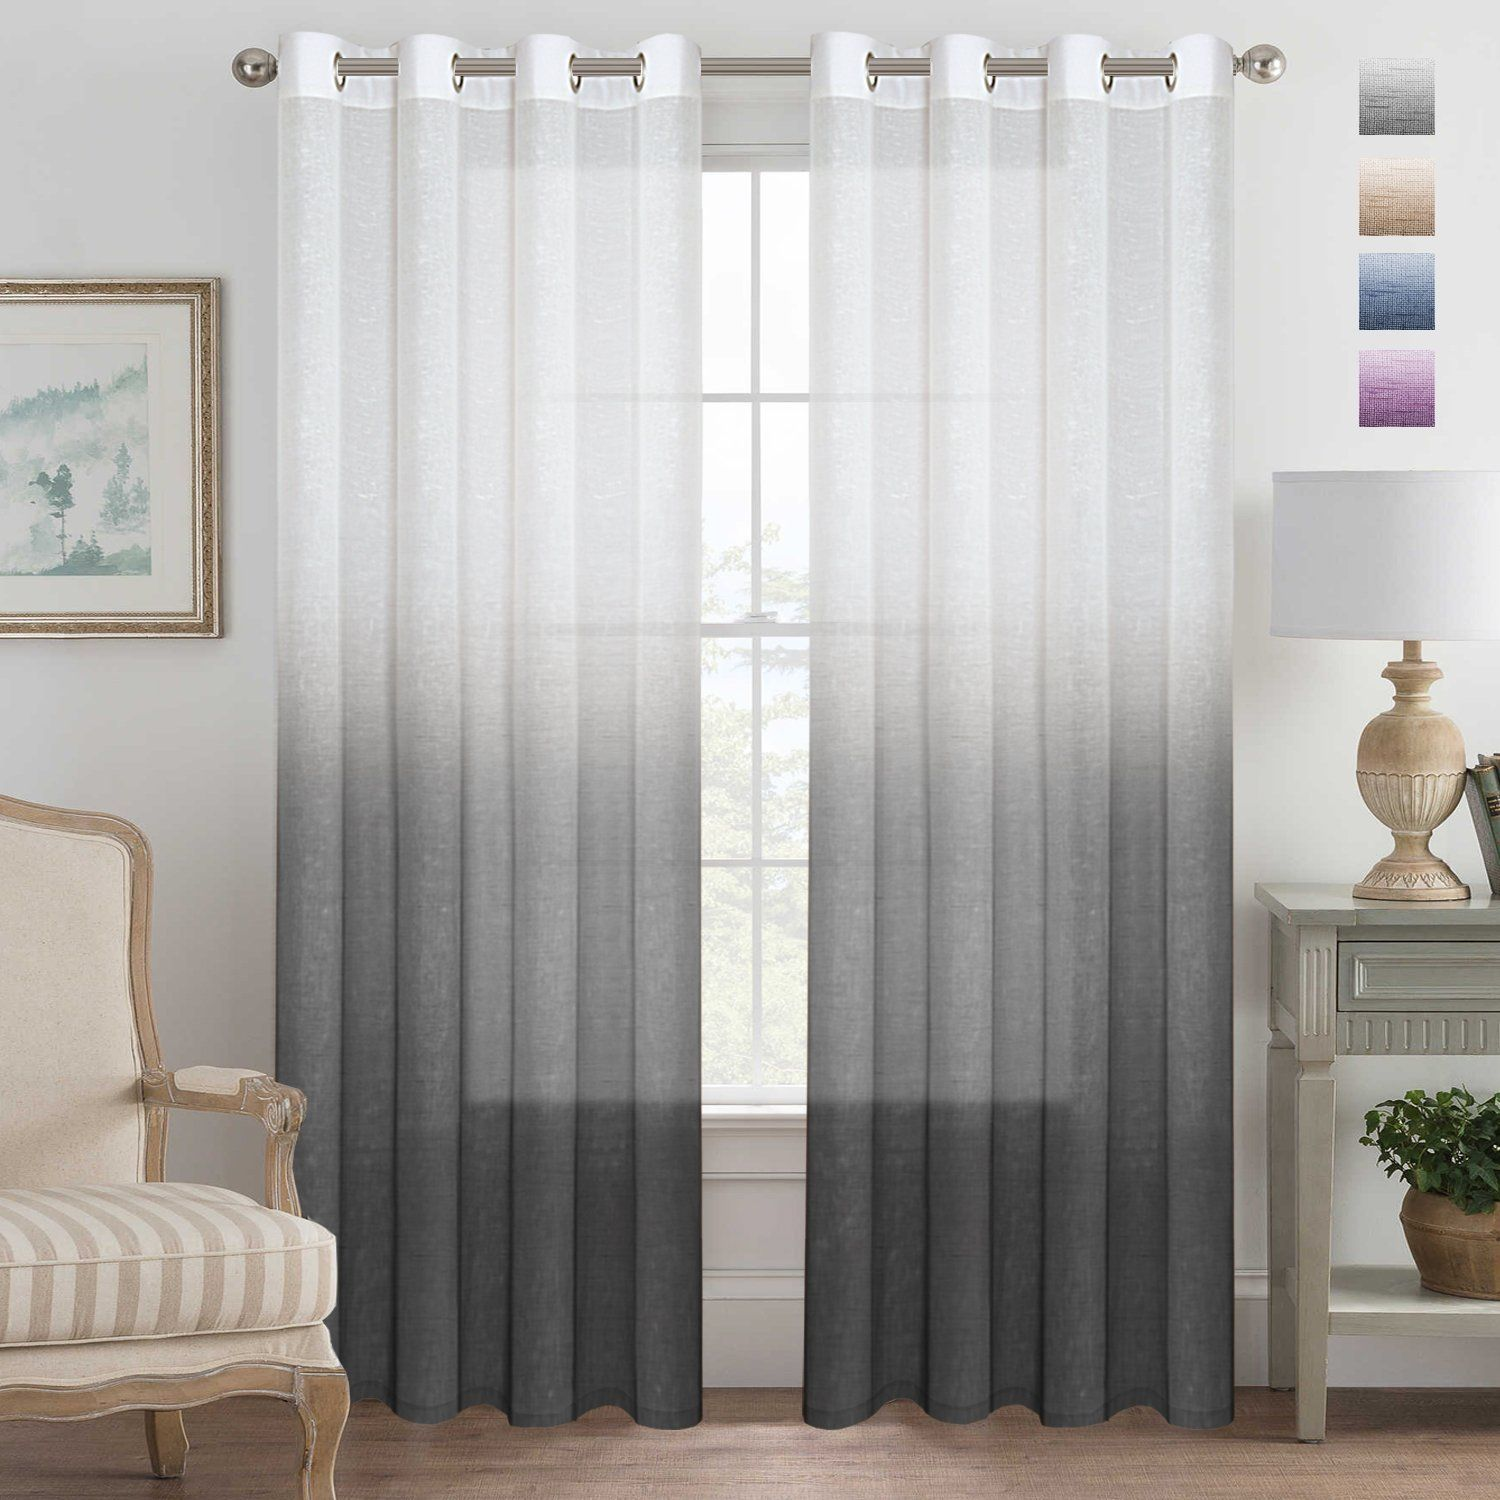 Hugedomains Com Ombre Curtains Sheer Linen Curtains Elegant Curtains